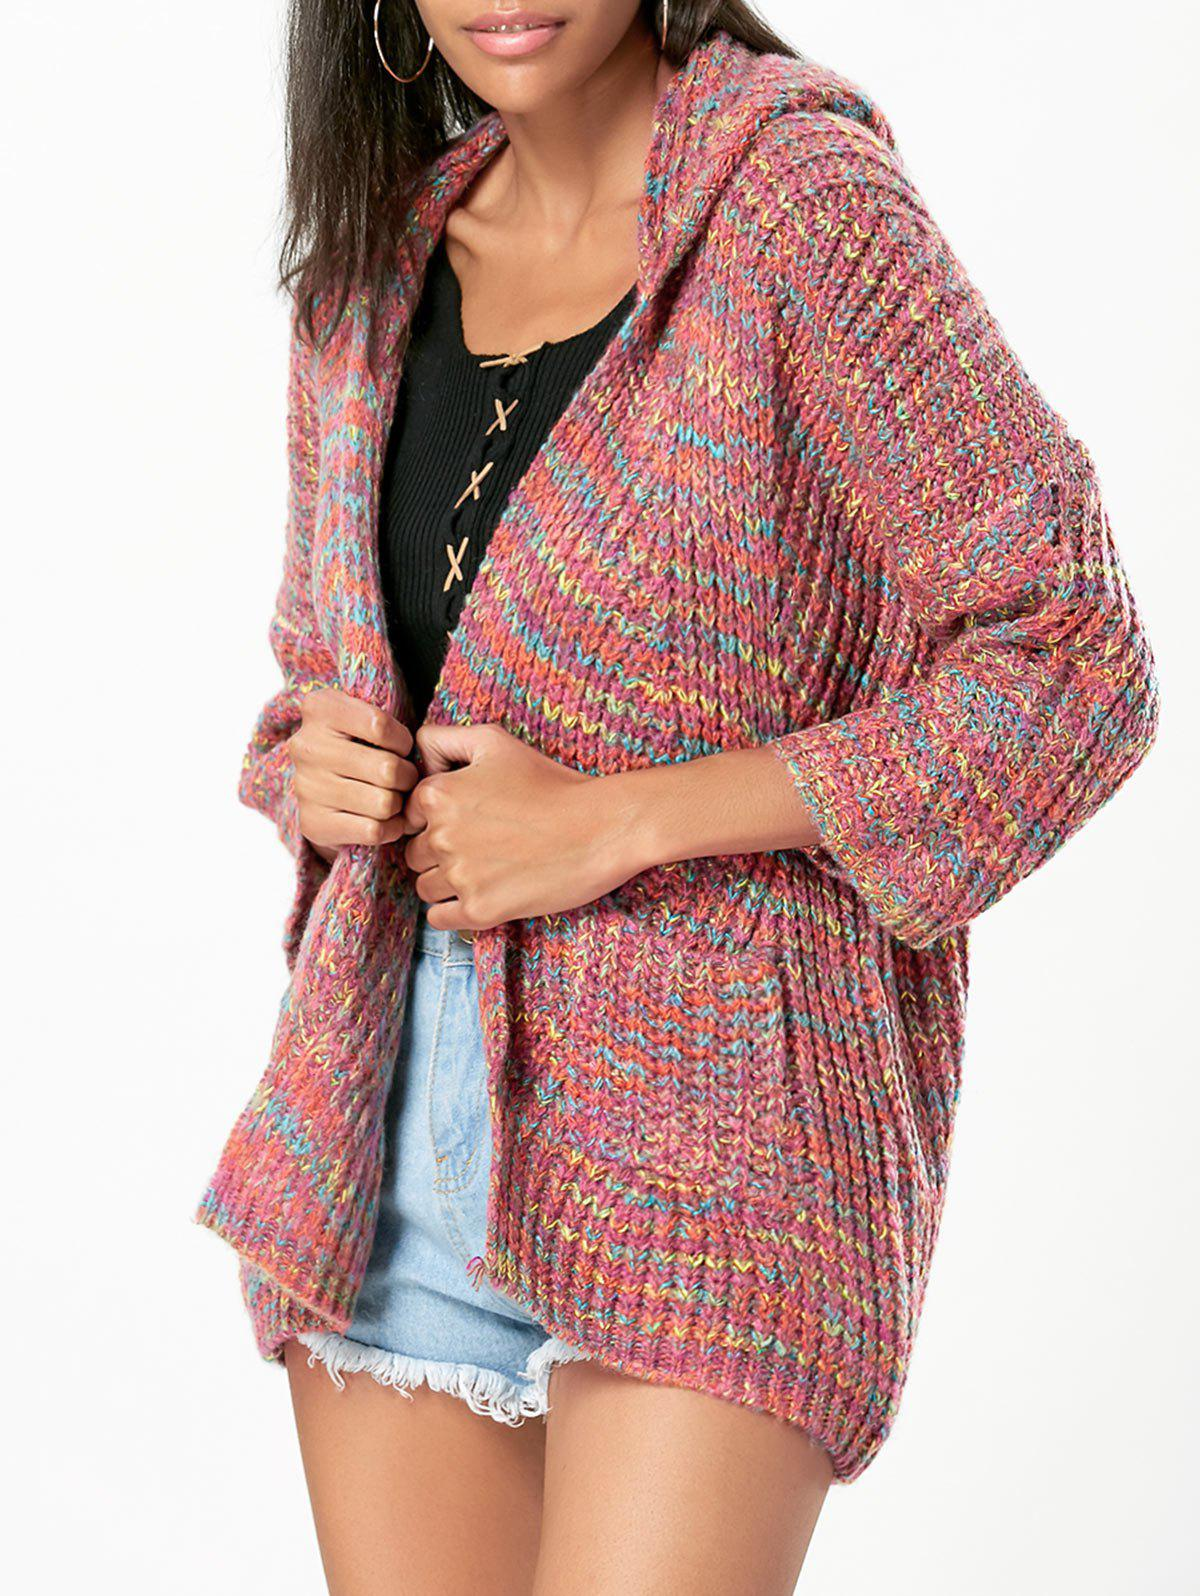 66f36d81d19 Hooded Rainbow Cardigan - One Size